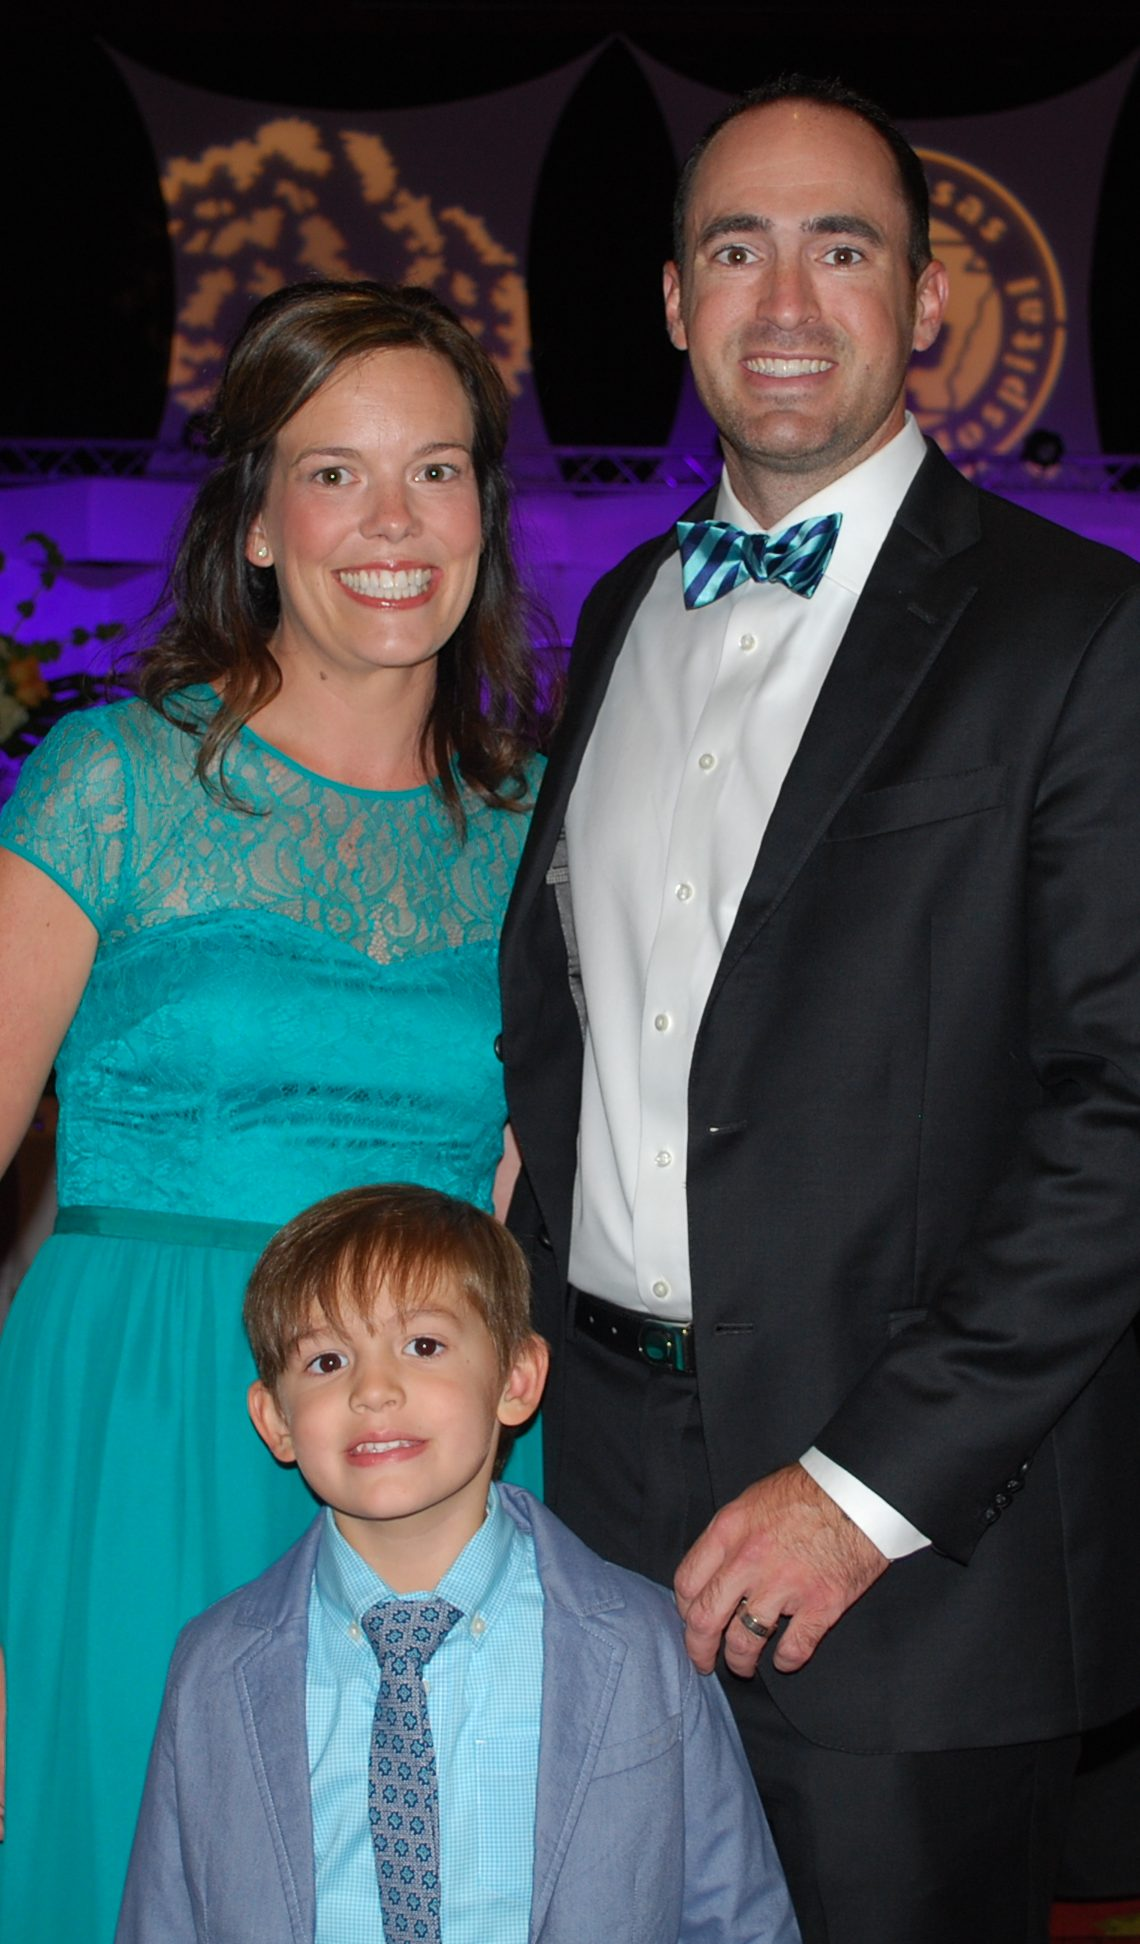 Color of Hope Gala and Will Golf 4 Kids Raises $745,000